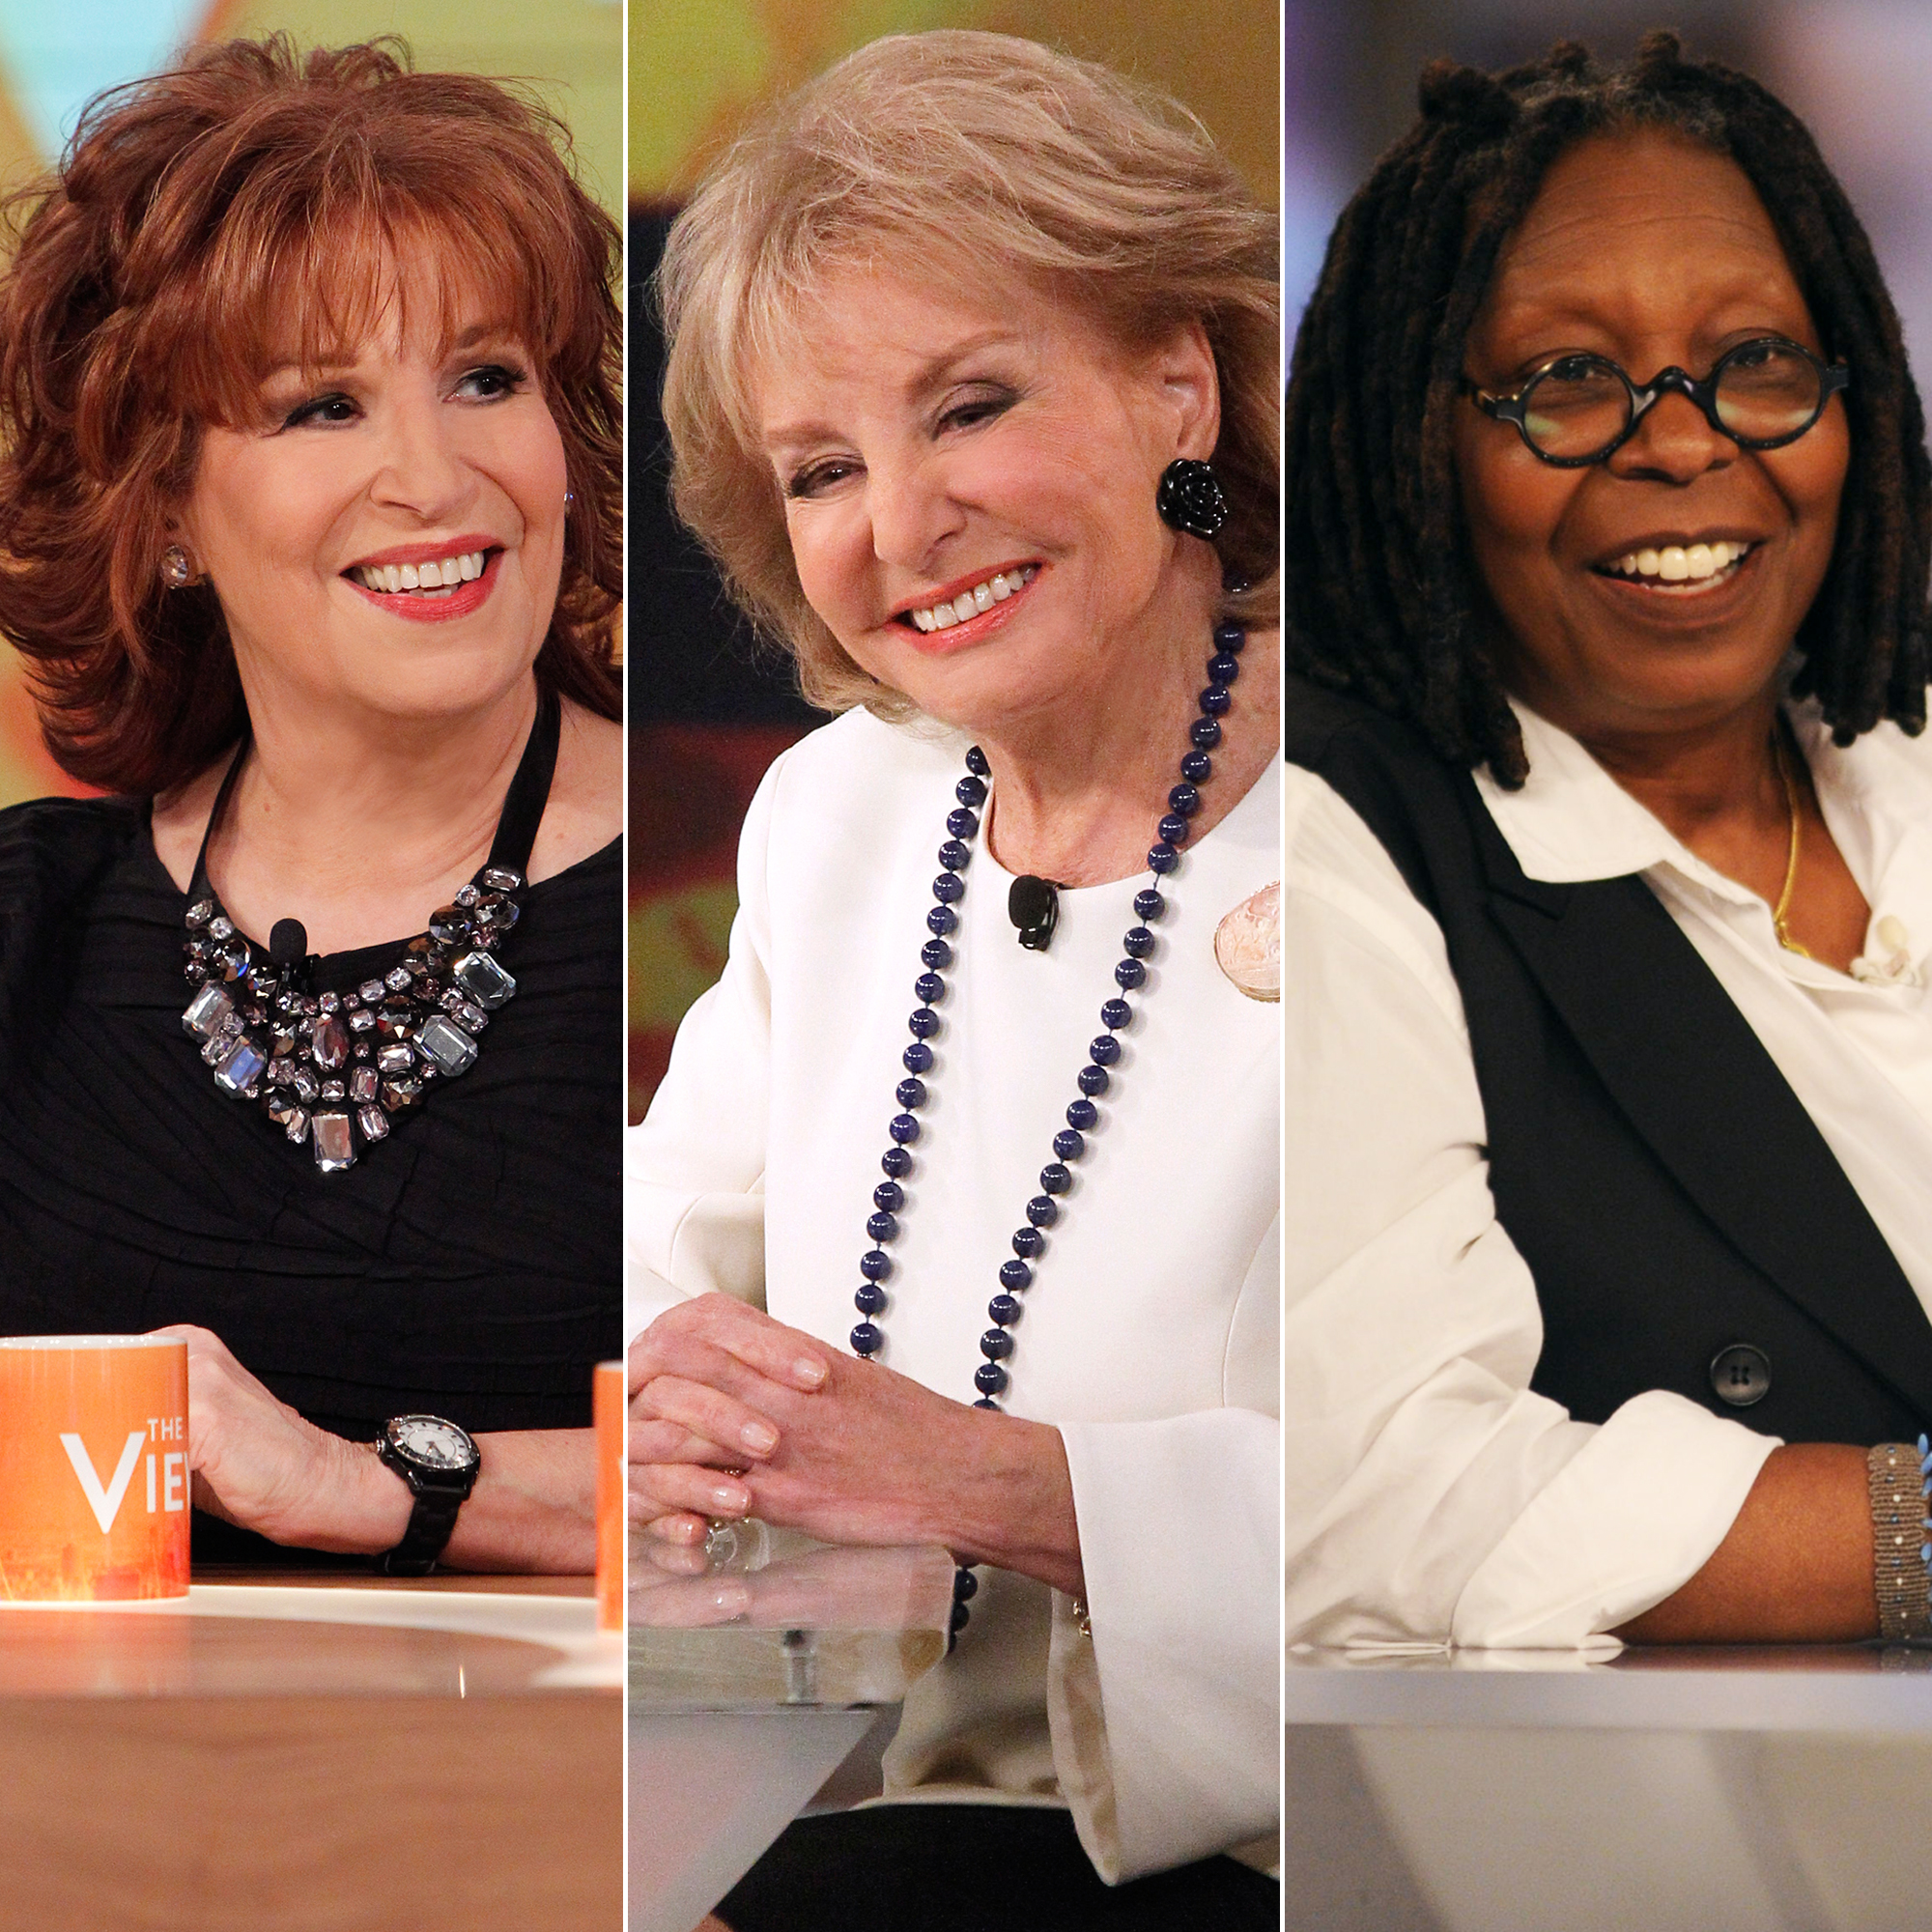 Every 'The View' Cohost Since 1997 Premiere: Joy Behar, Barbara Walters, Whoopi Goldberg and More - Joy Behar, Barbara Walters and Whoopi Goldberg on 'The View.'